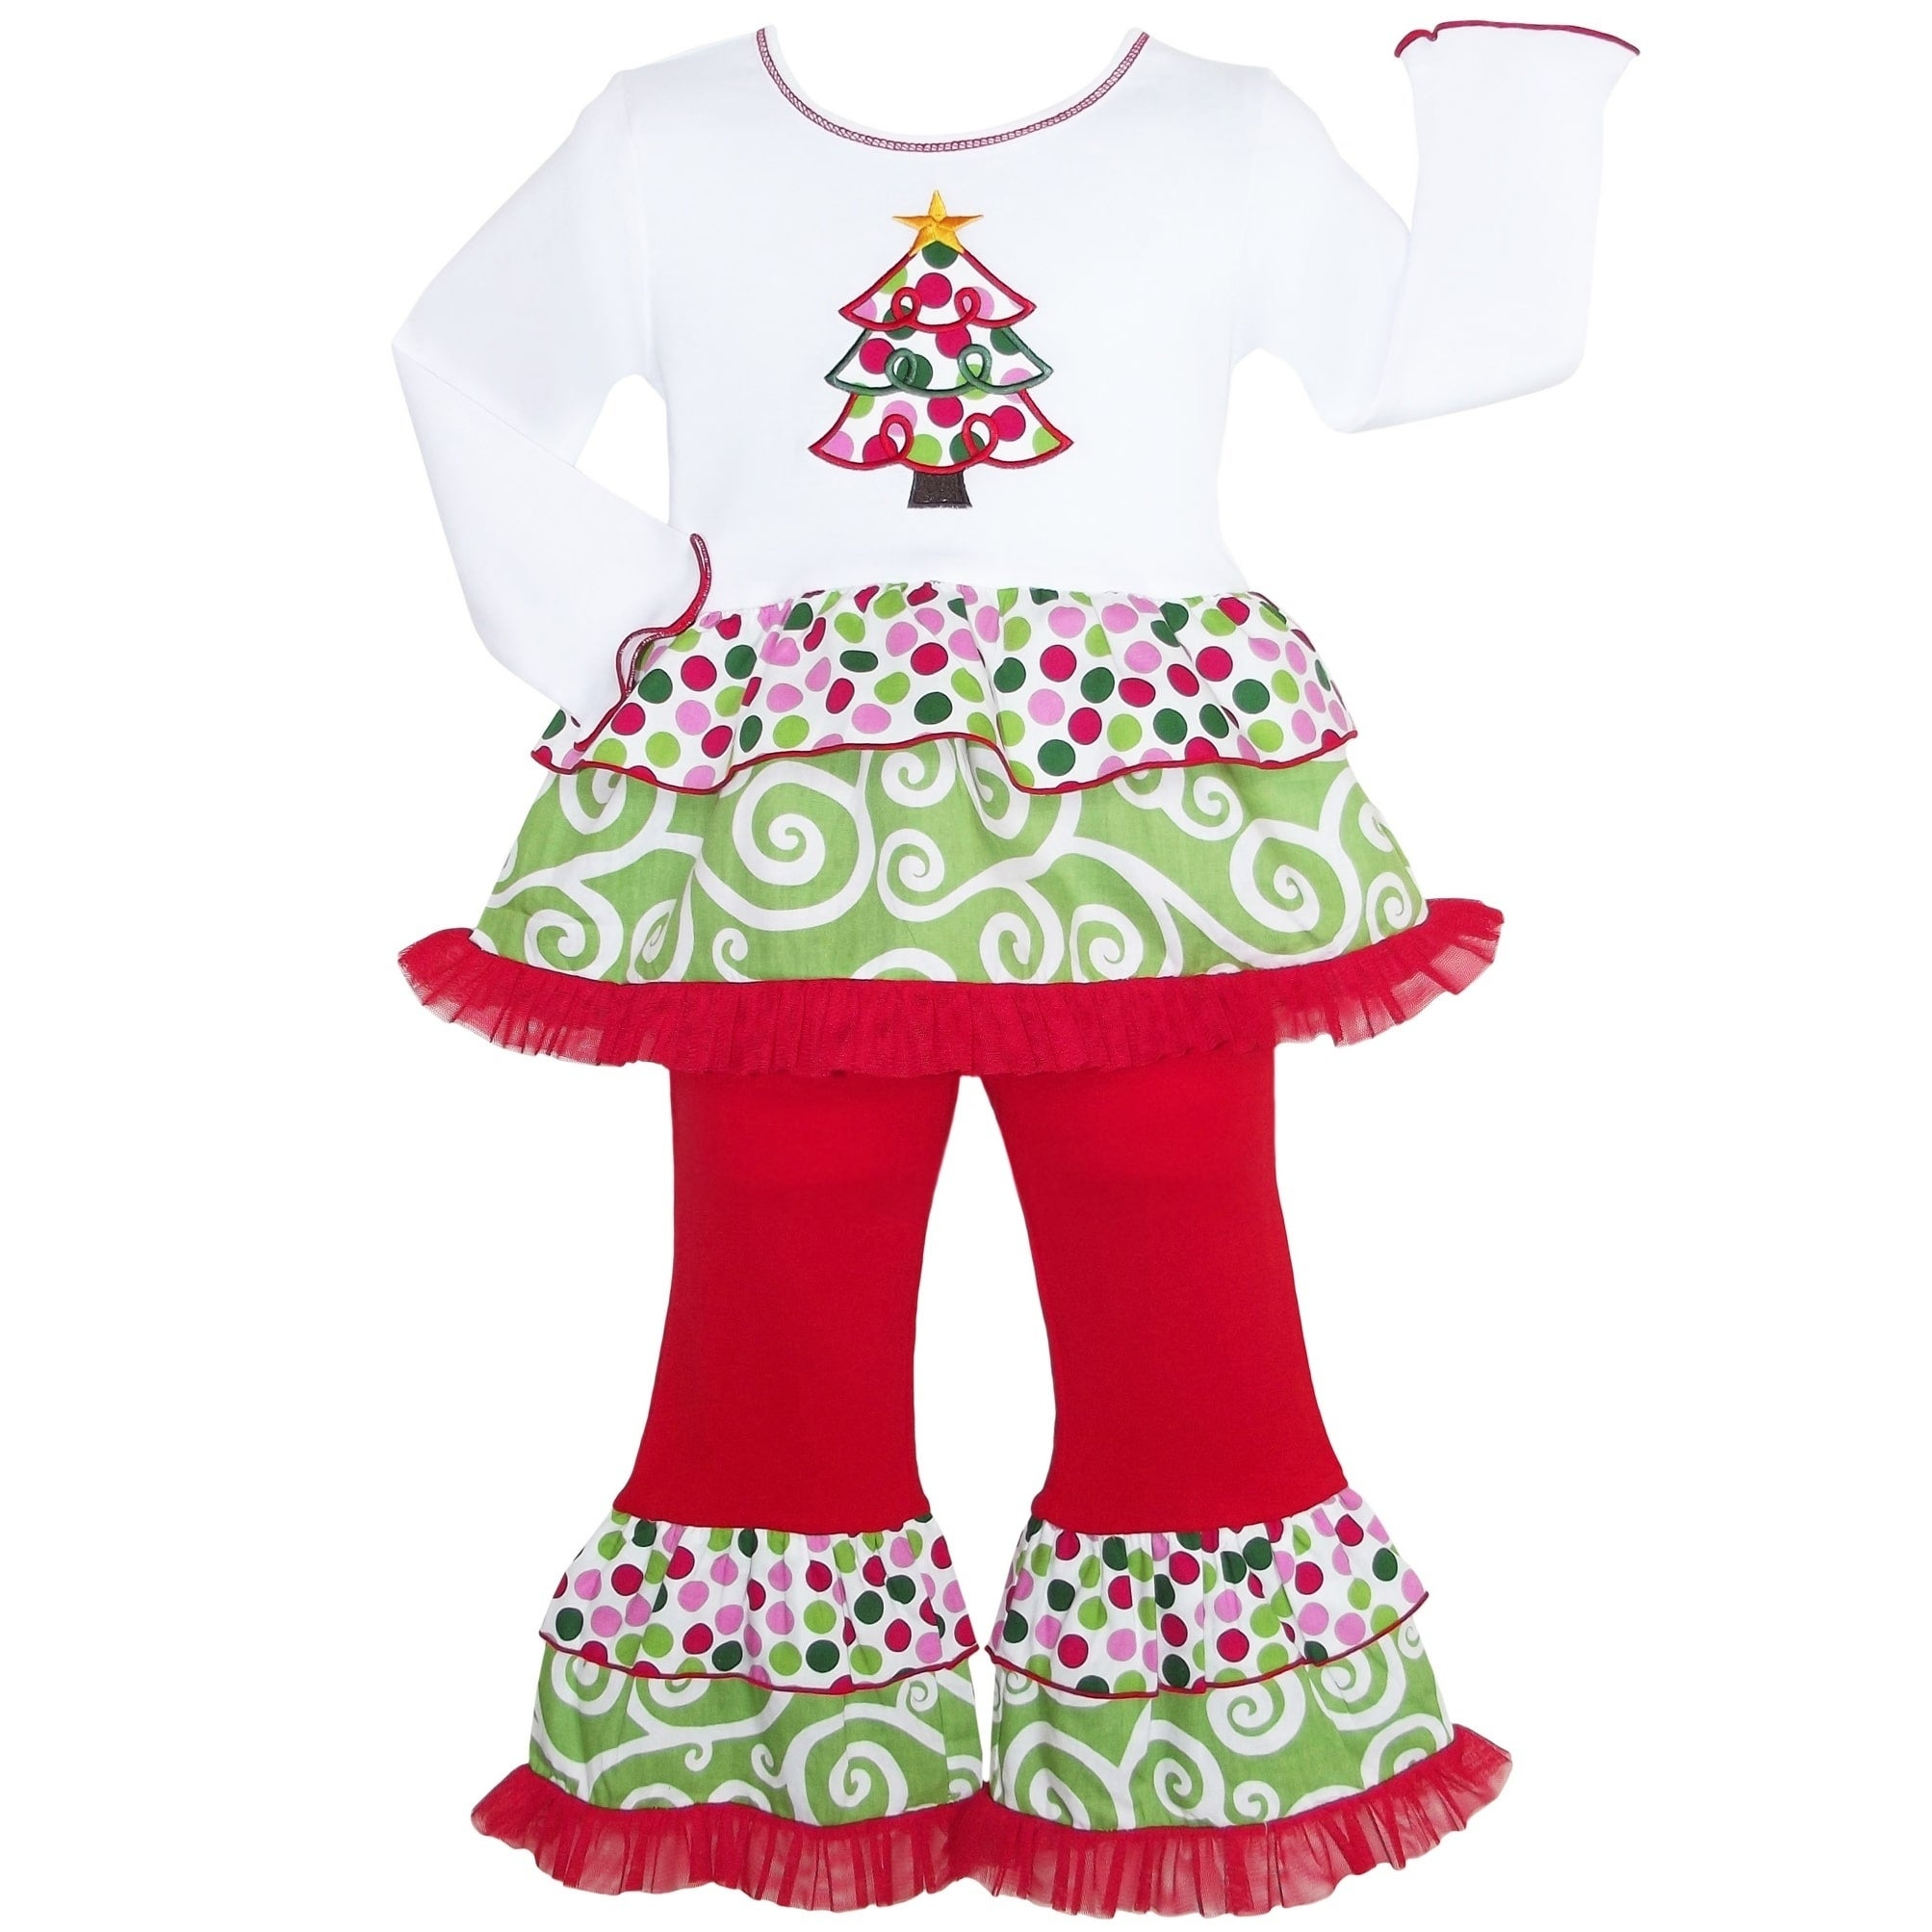 Ann Loren Girls Polka Dot Swirl Christmas Tree Holiday Outfit